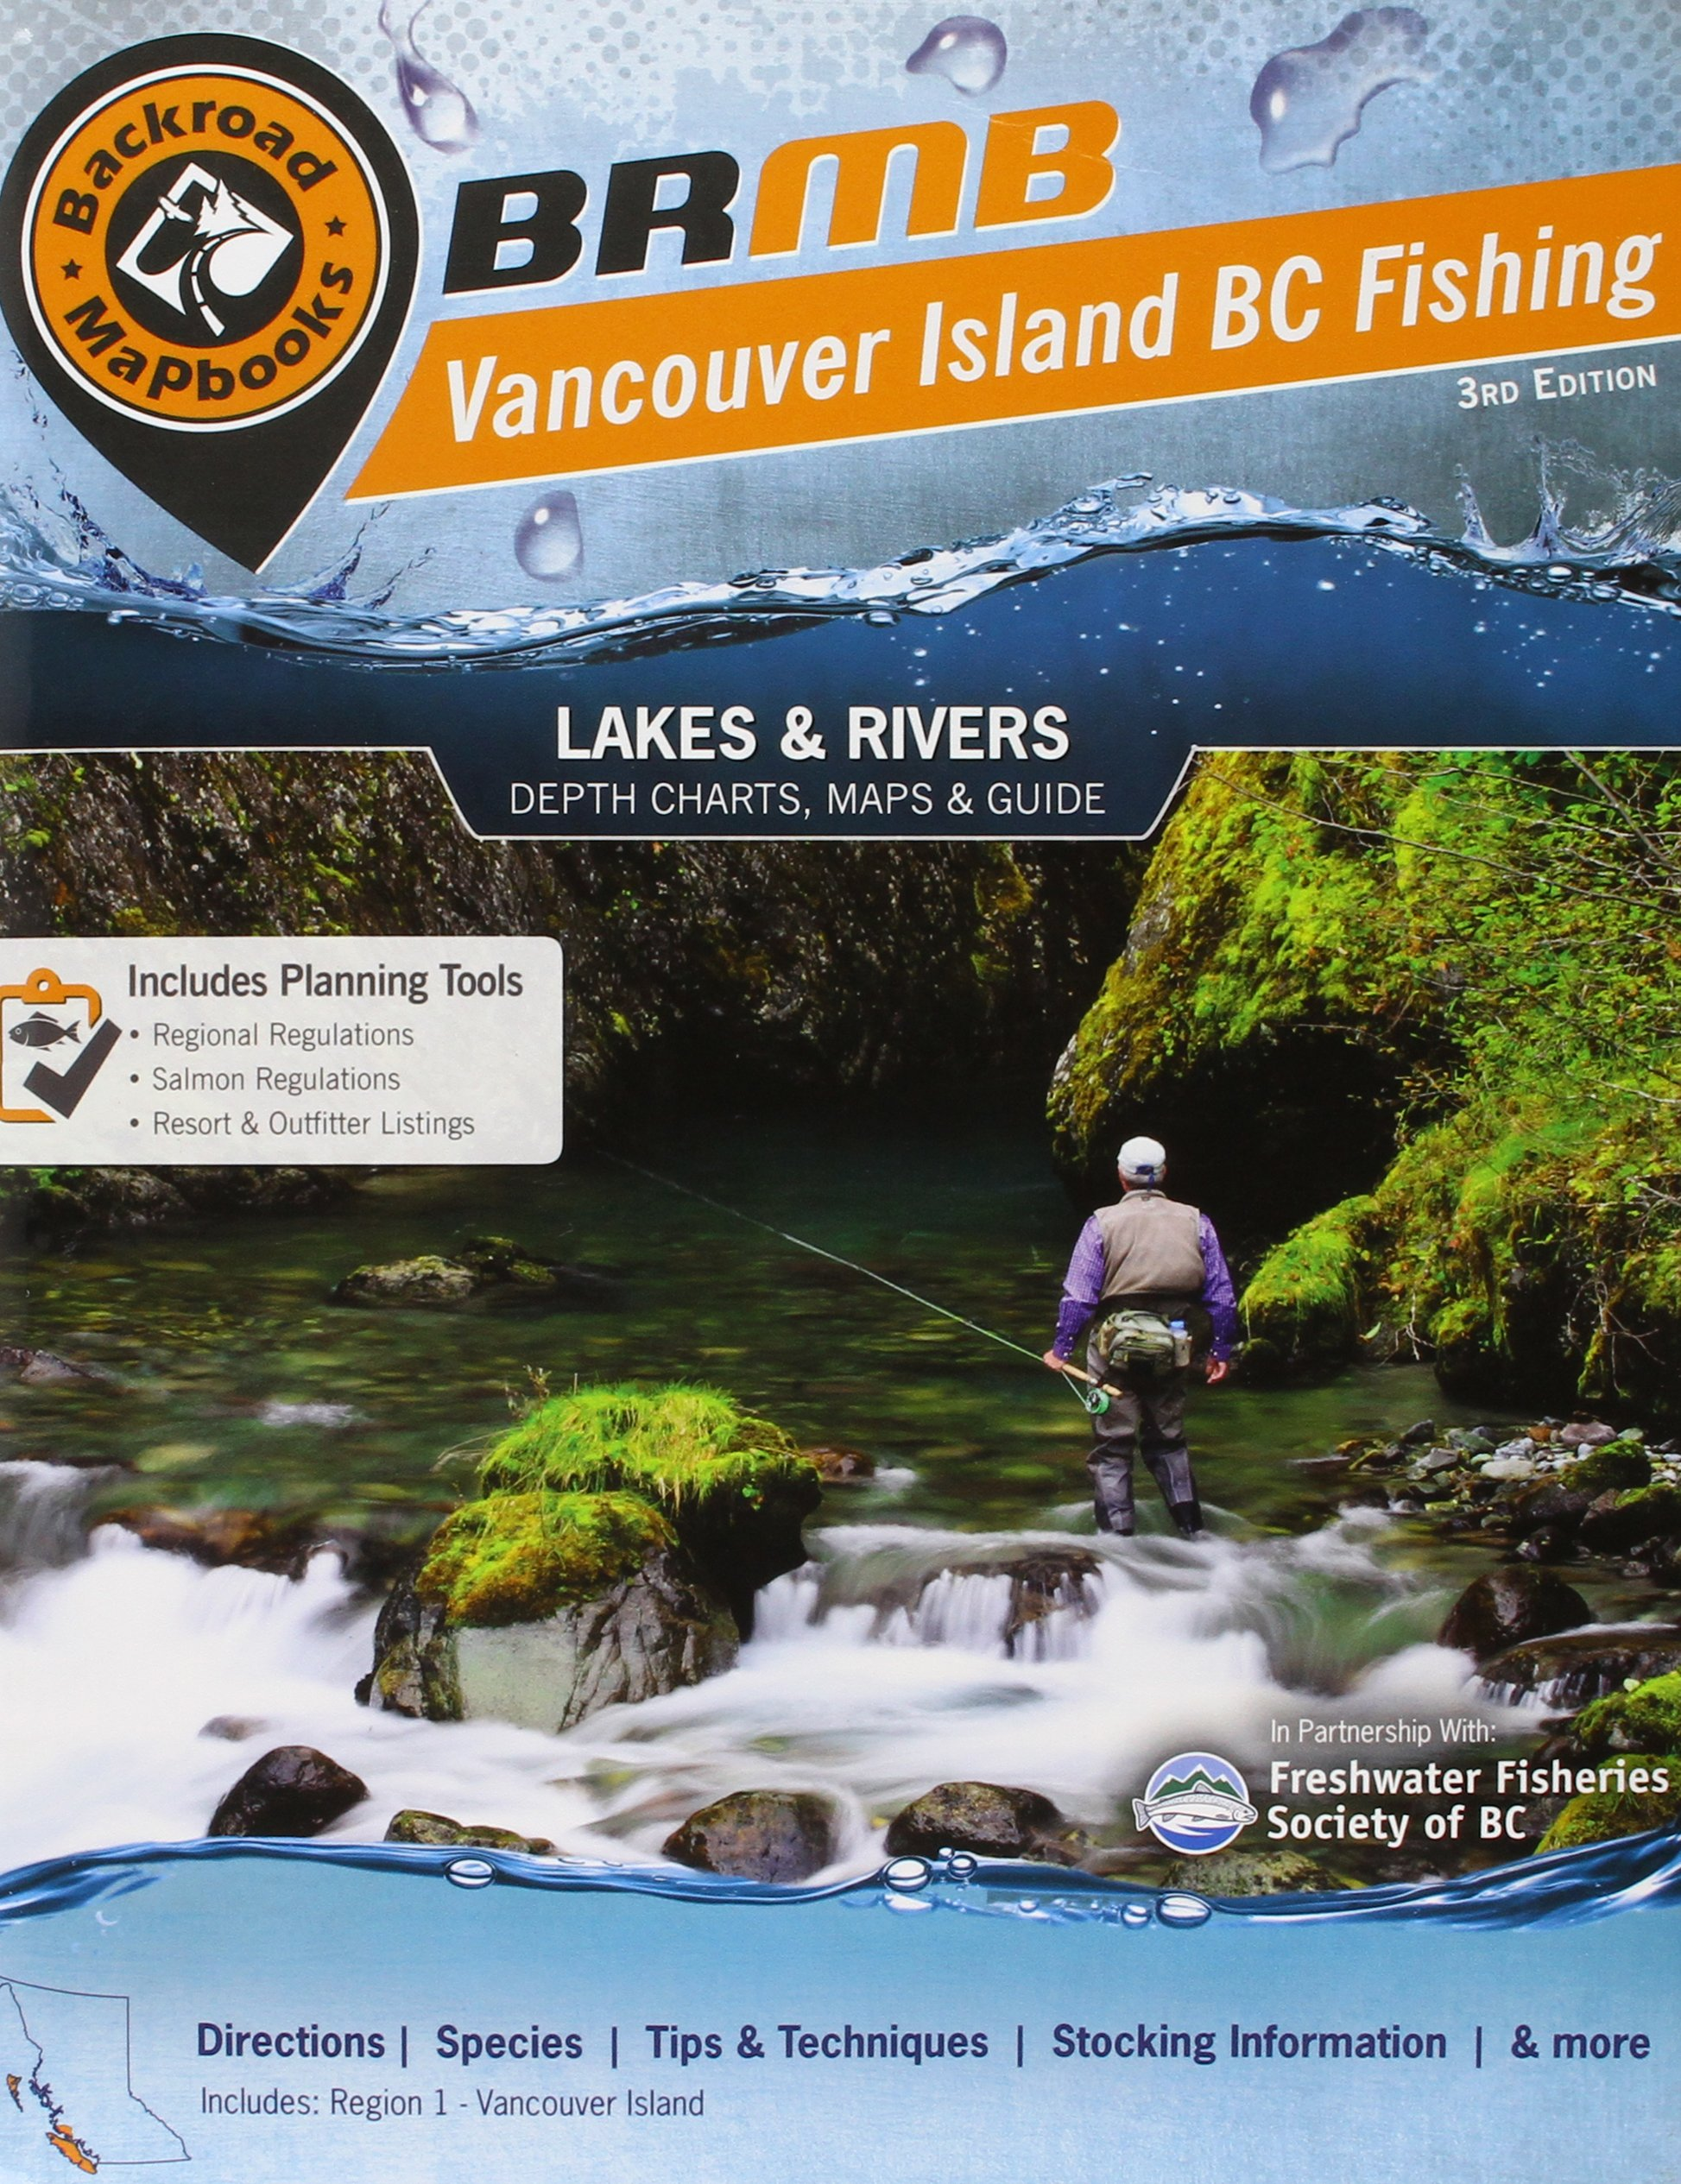 Buy Vancouver Island Bc Fishing Mapbook Region 1 Vancouver Island Fishing Mapbooks Book Online At Low Prices In India Vancouver Island Bc Fishing Mapbook Region 1 Vancouver Island Fishing Mapbooks Reviews